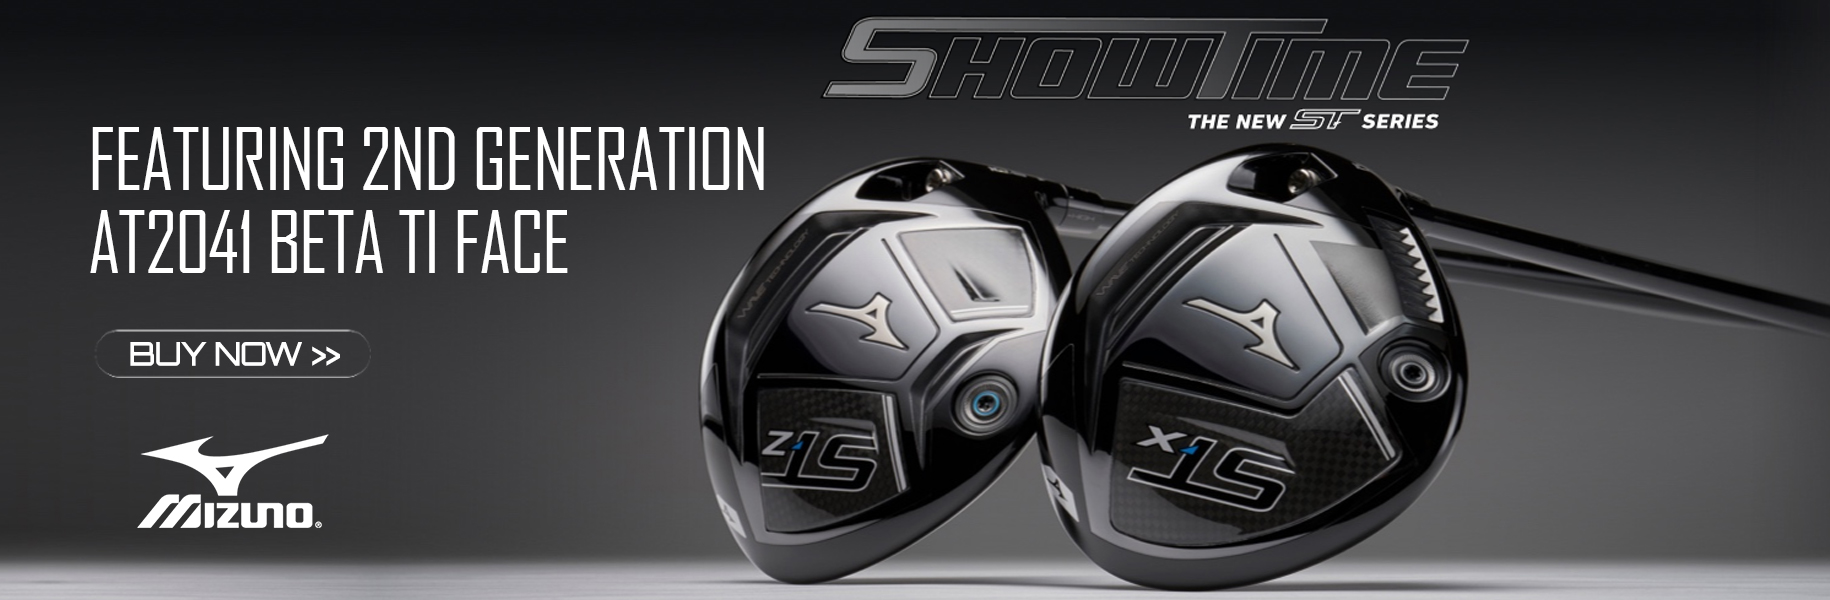 New Mizuno Woods Available now